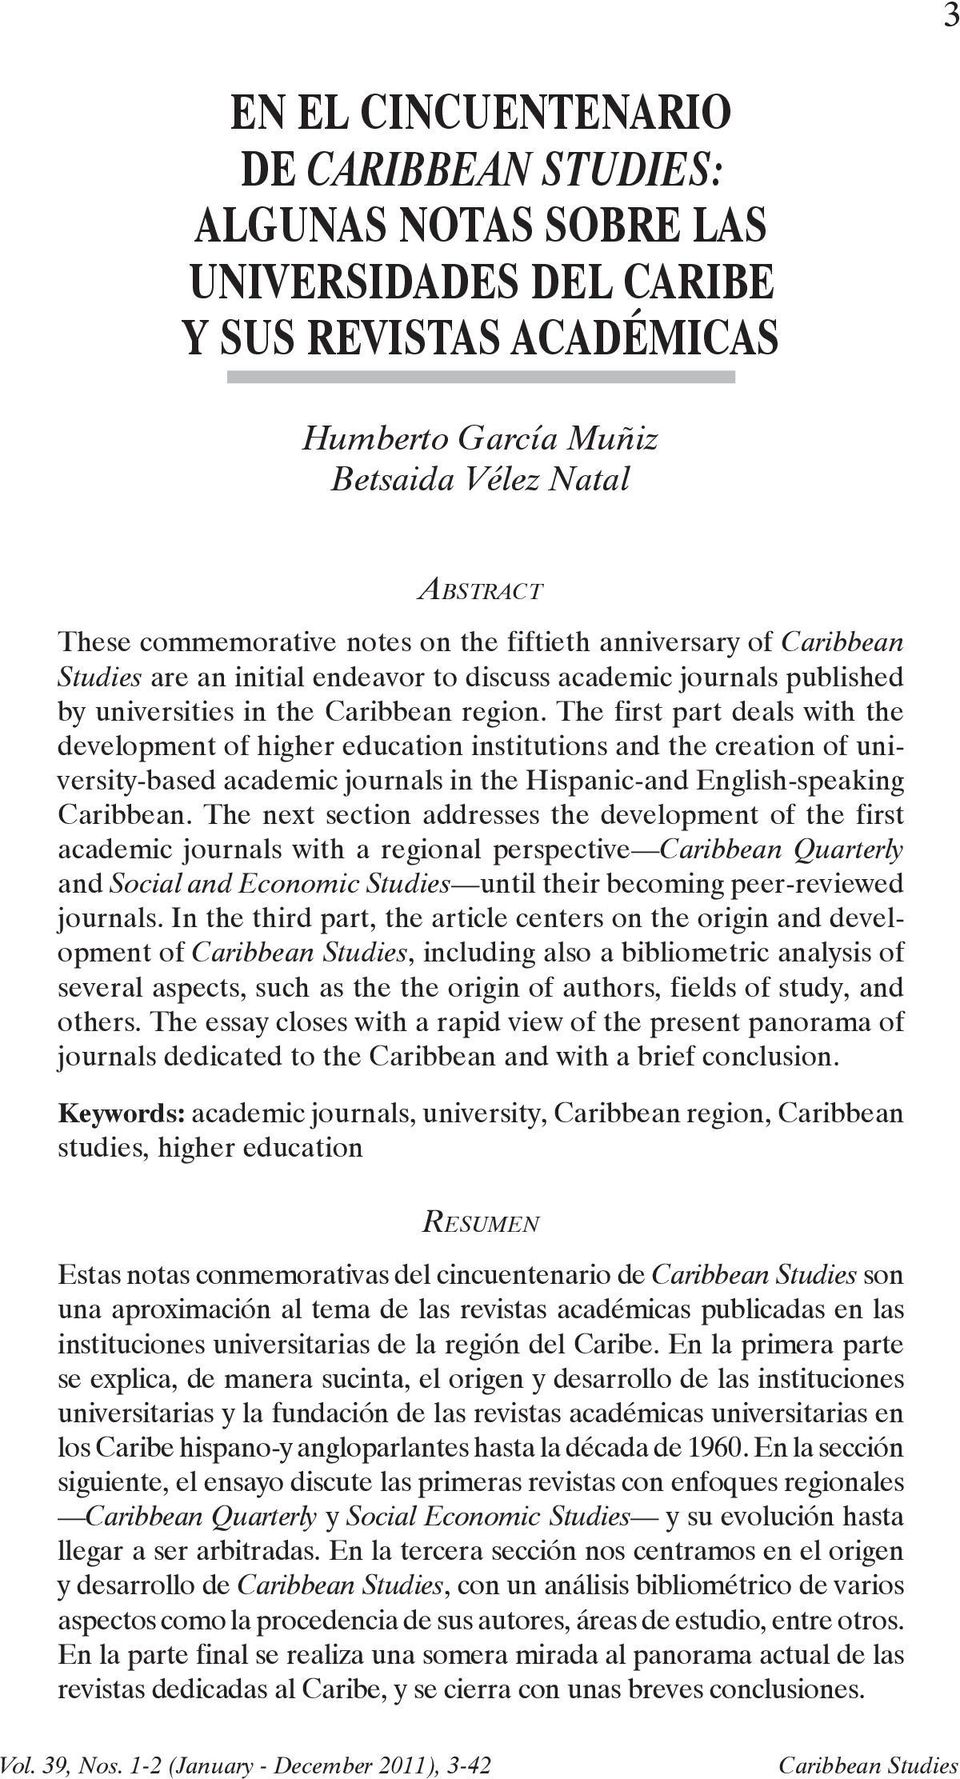 notes on the fiftieth anniversary of Caribbean Studies are an initial endeavor to discuss academic journals published by universities in the Caribbean region.